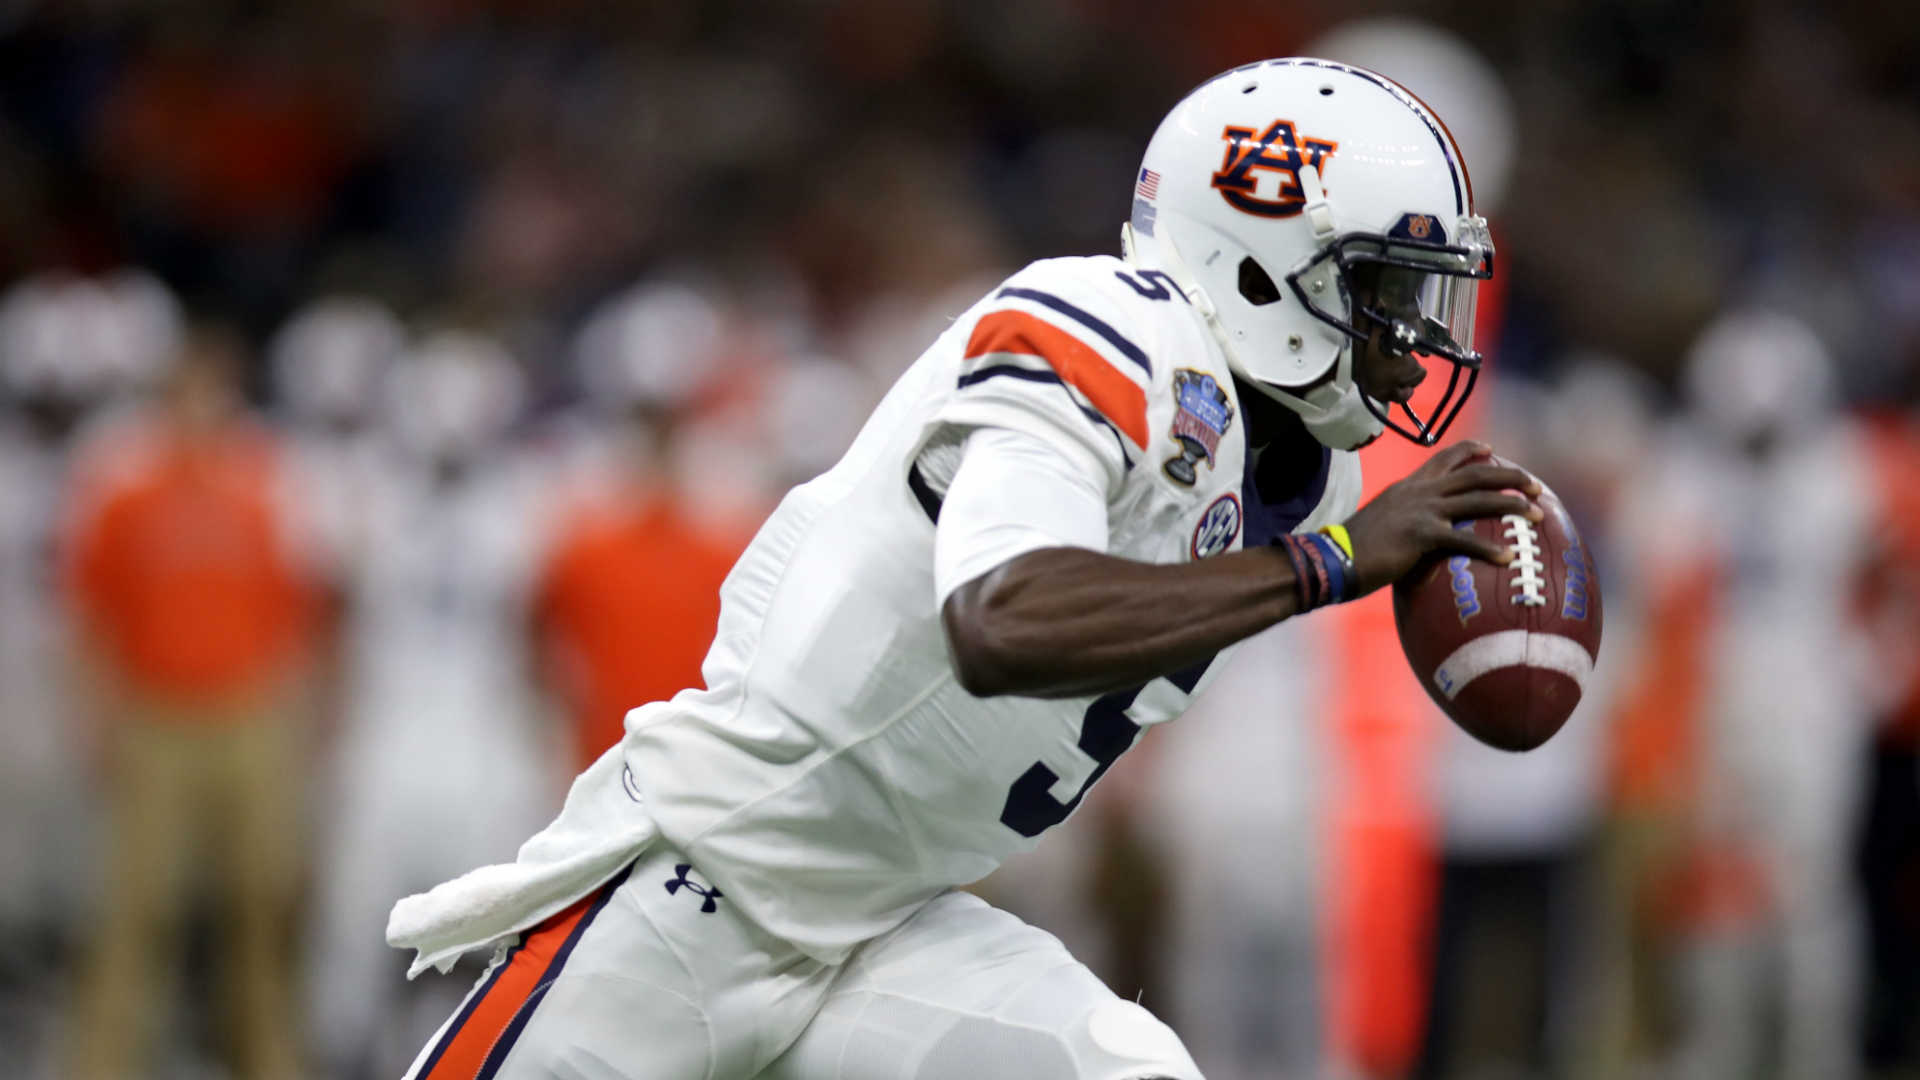 WR John Franklin III has left the Auburn football program